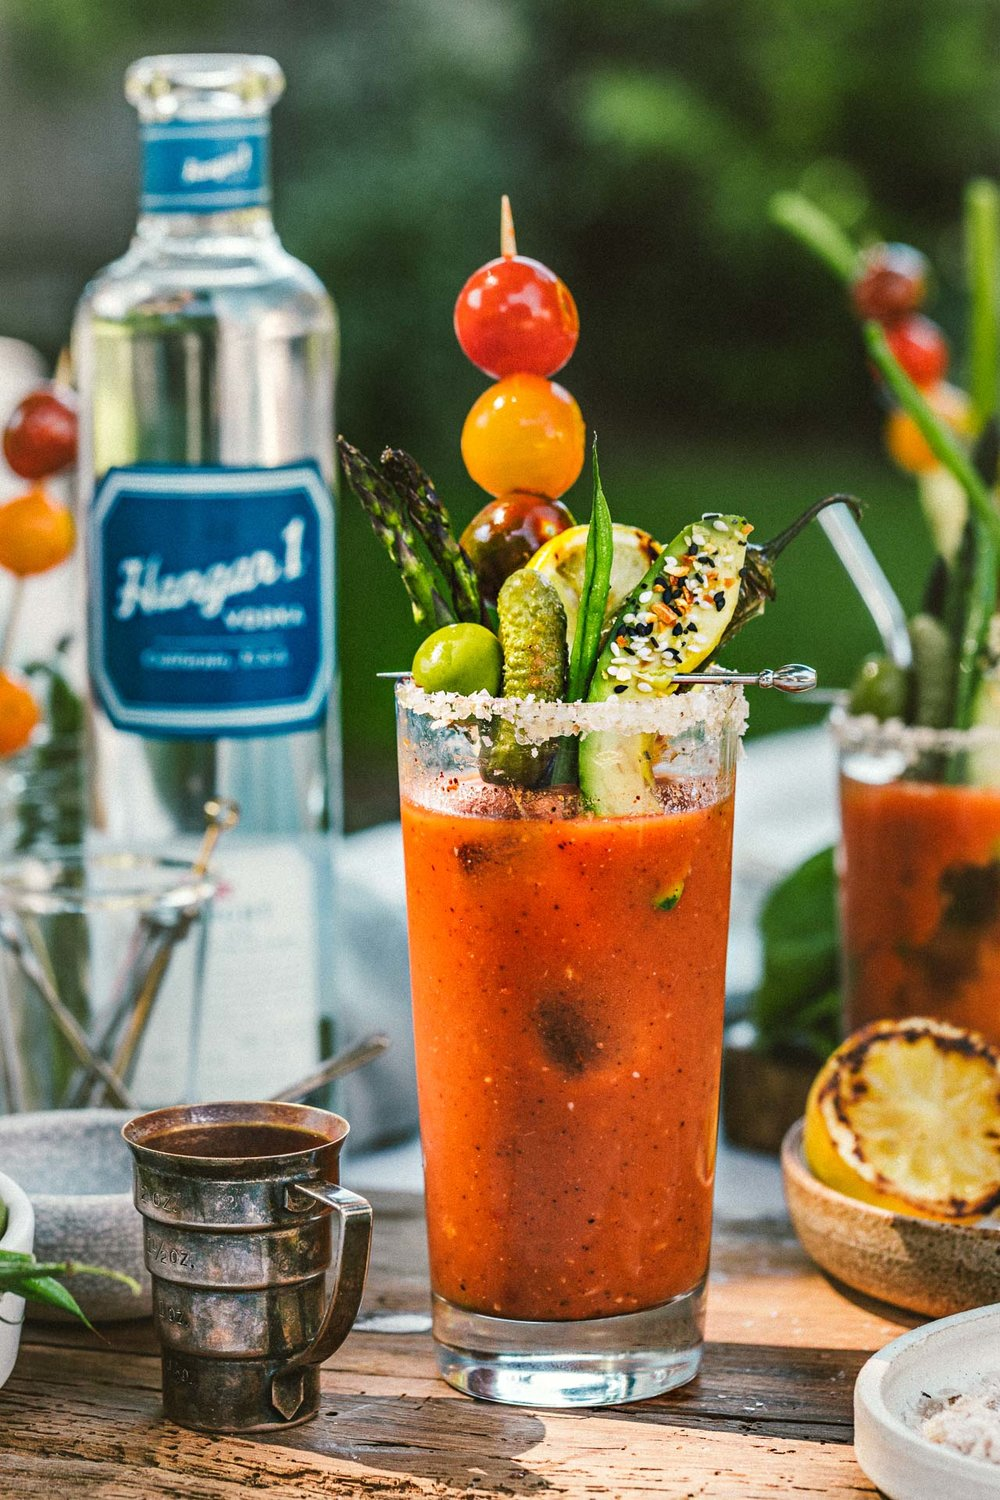 20180605-untitled-4204-Editgrilled.bloody.mary.hangar.1.vodka.jpg